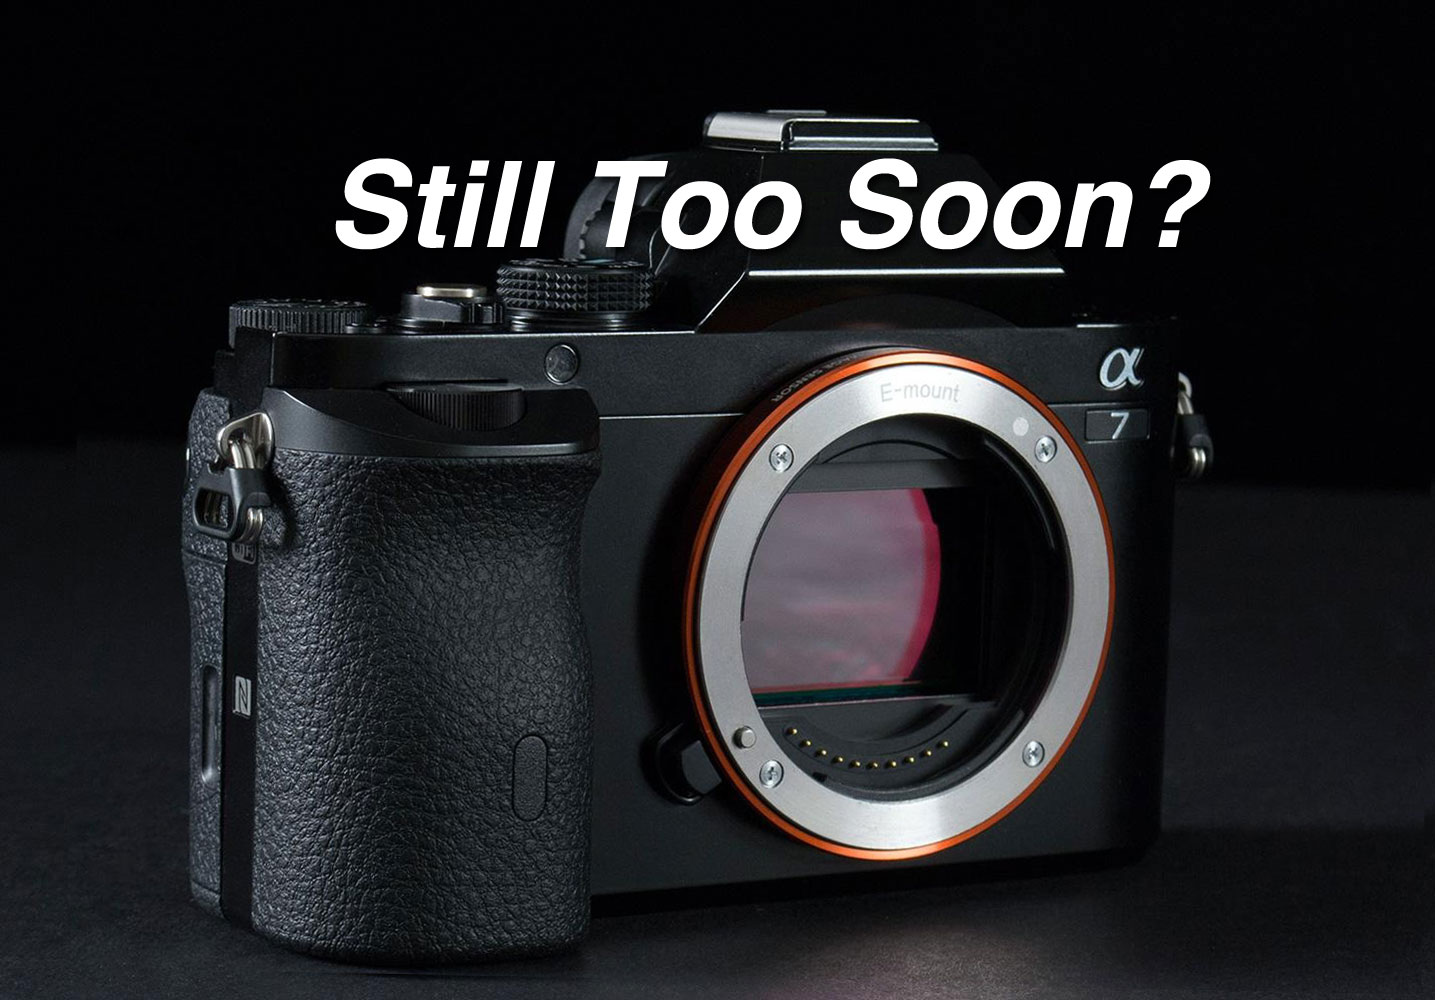 Imposing Detailed Reasons Why It Is Still Too Early To Switch To A Full Framemirrorless System Full Frame Mirrorless Ilovehatephotography Canon Full Frame Mirrorless Leaked Canon Full Frame Mirrorless dpreview Canon Full Frame Mirrorless